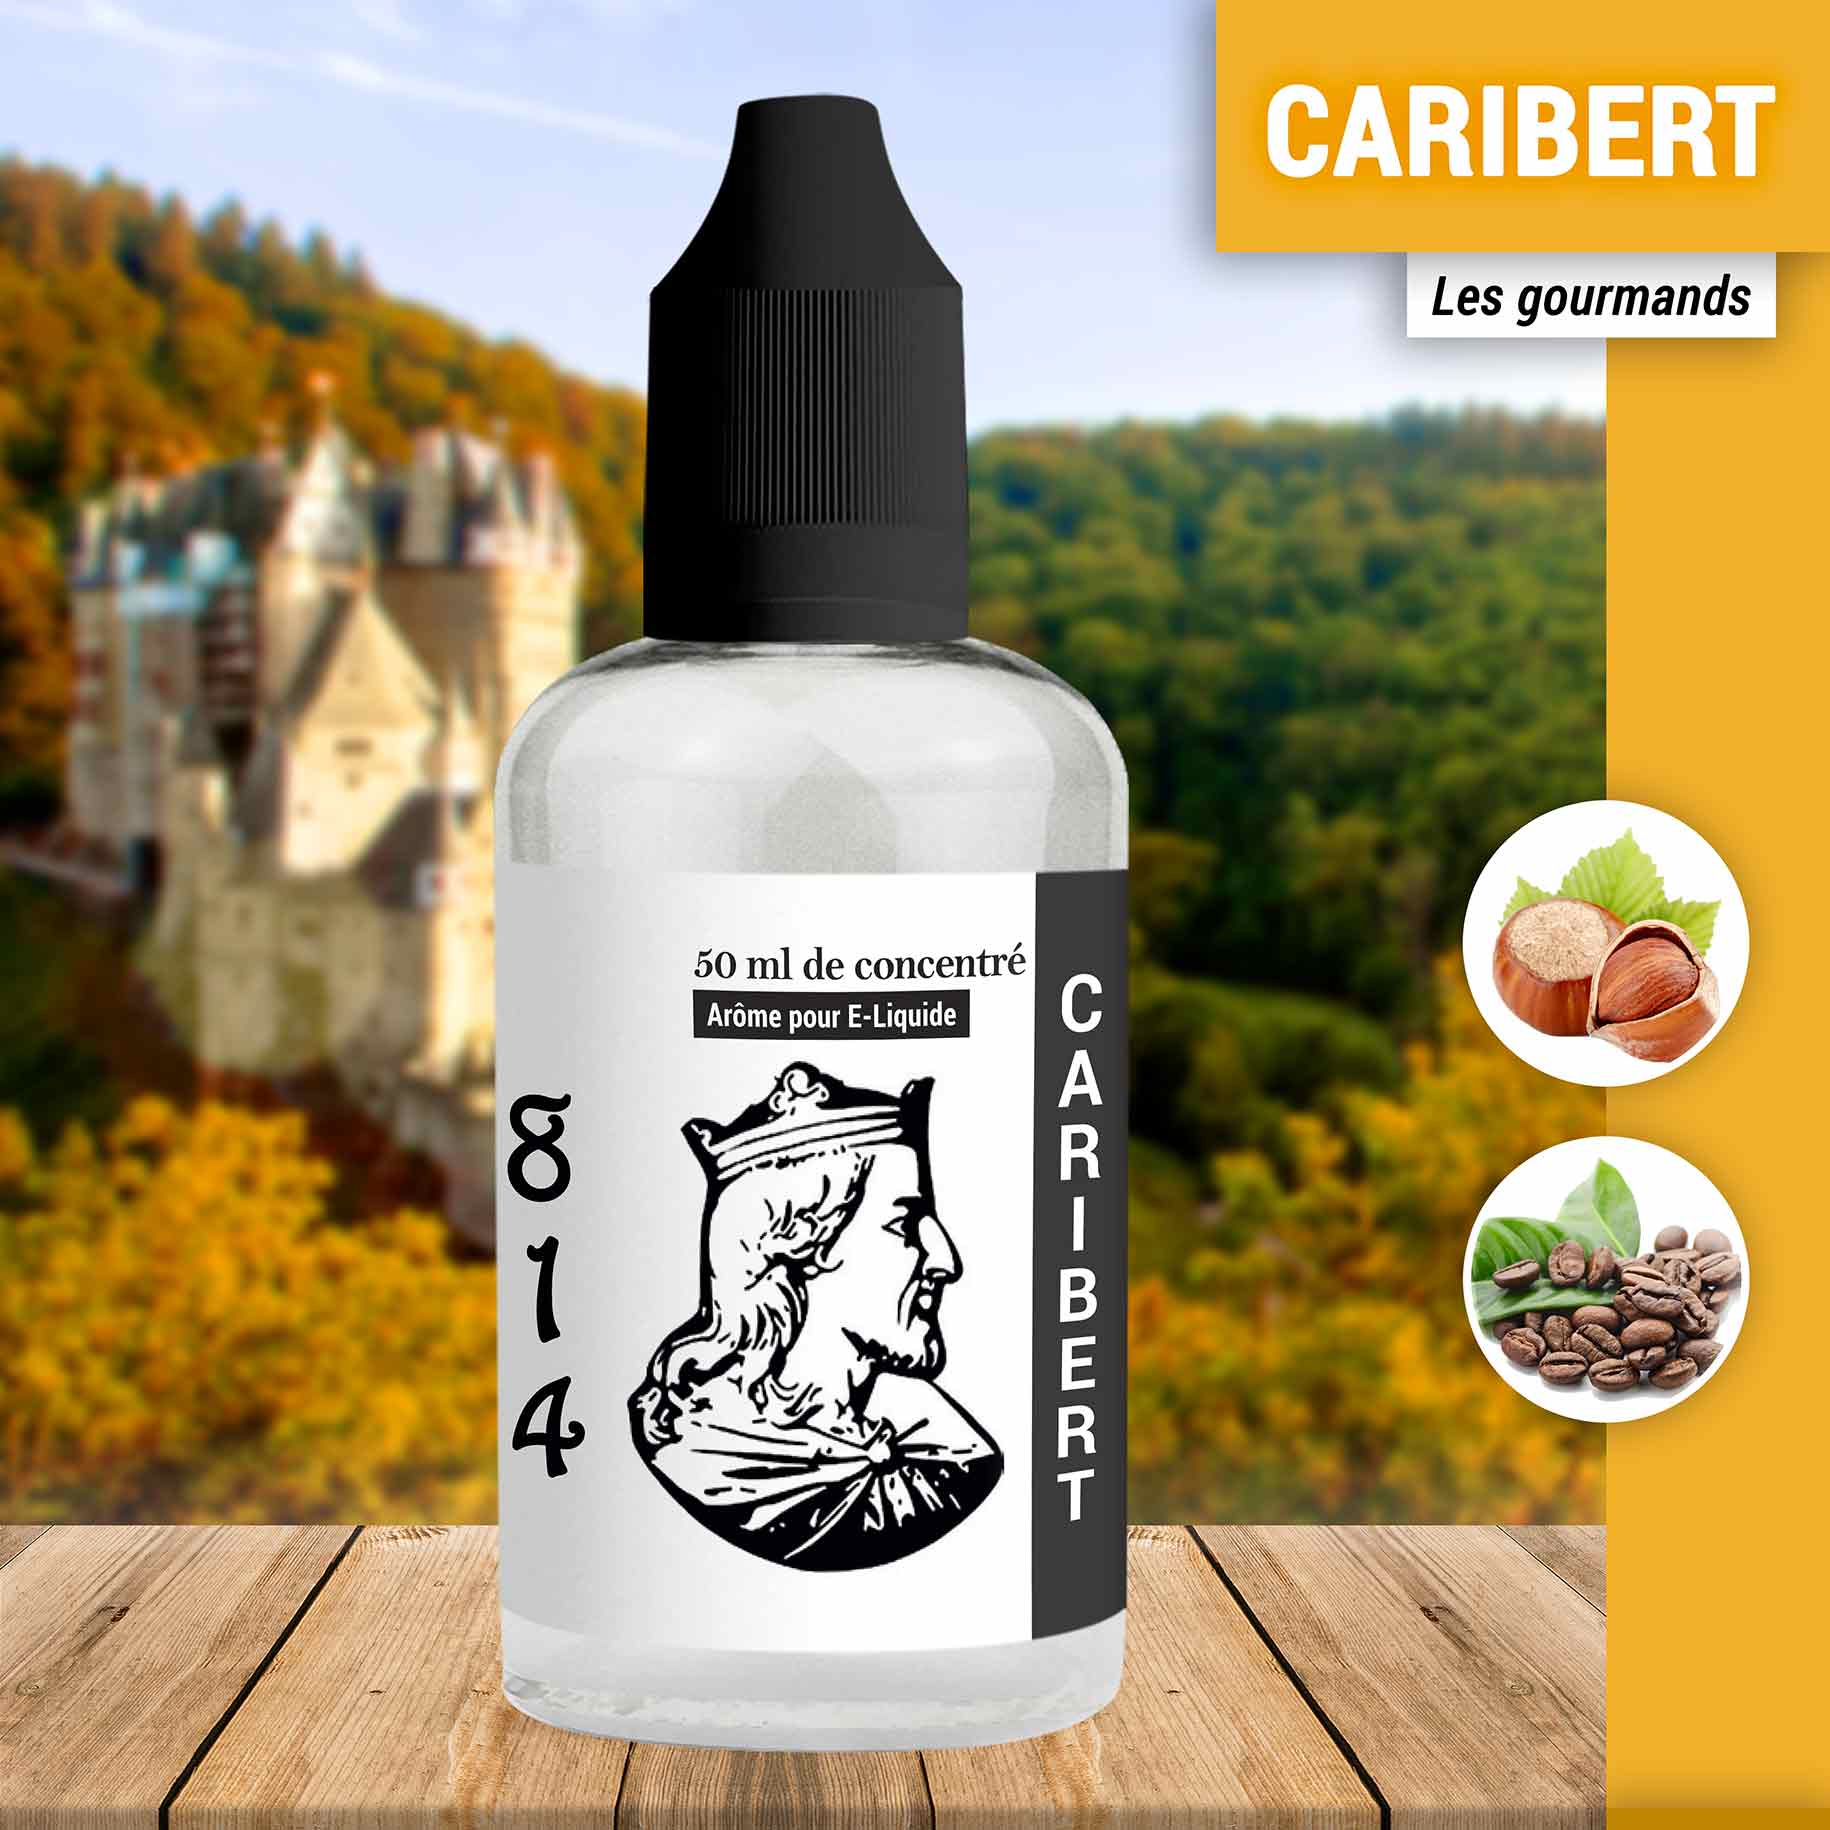 Concentré Caribert 50ml